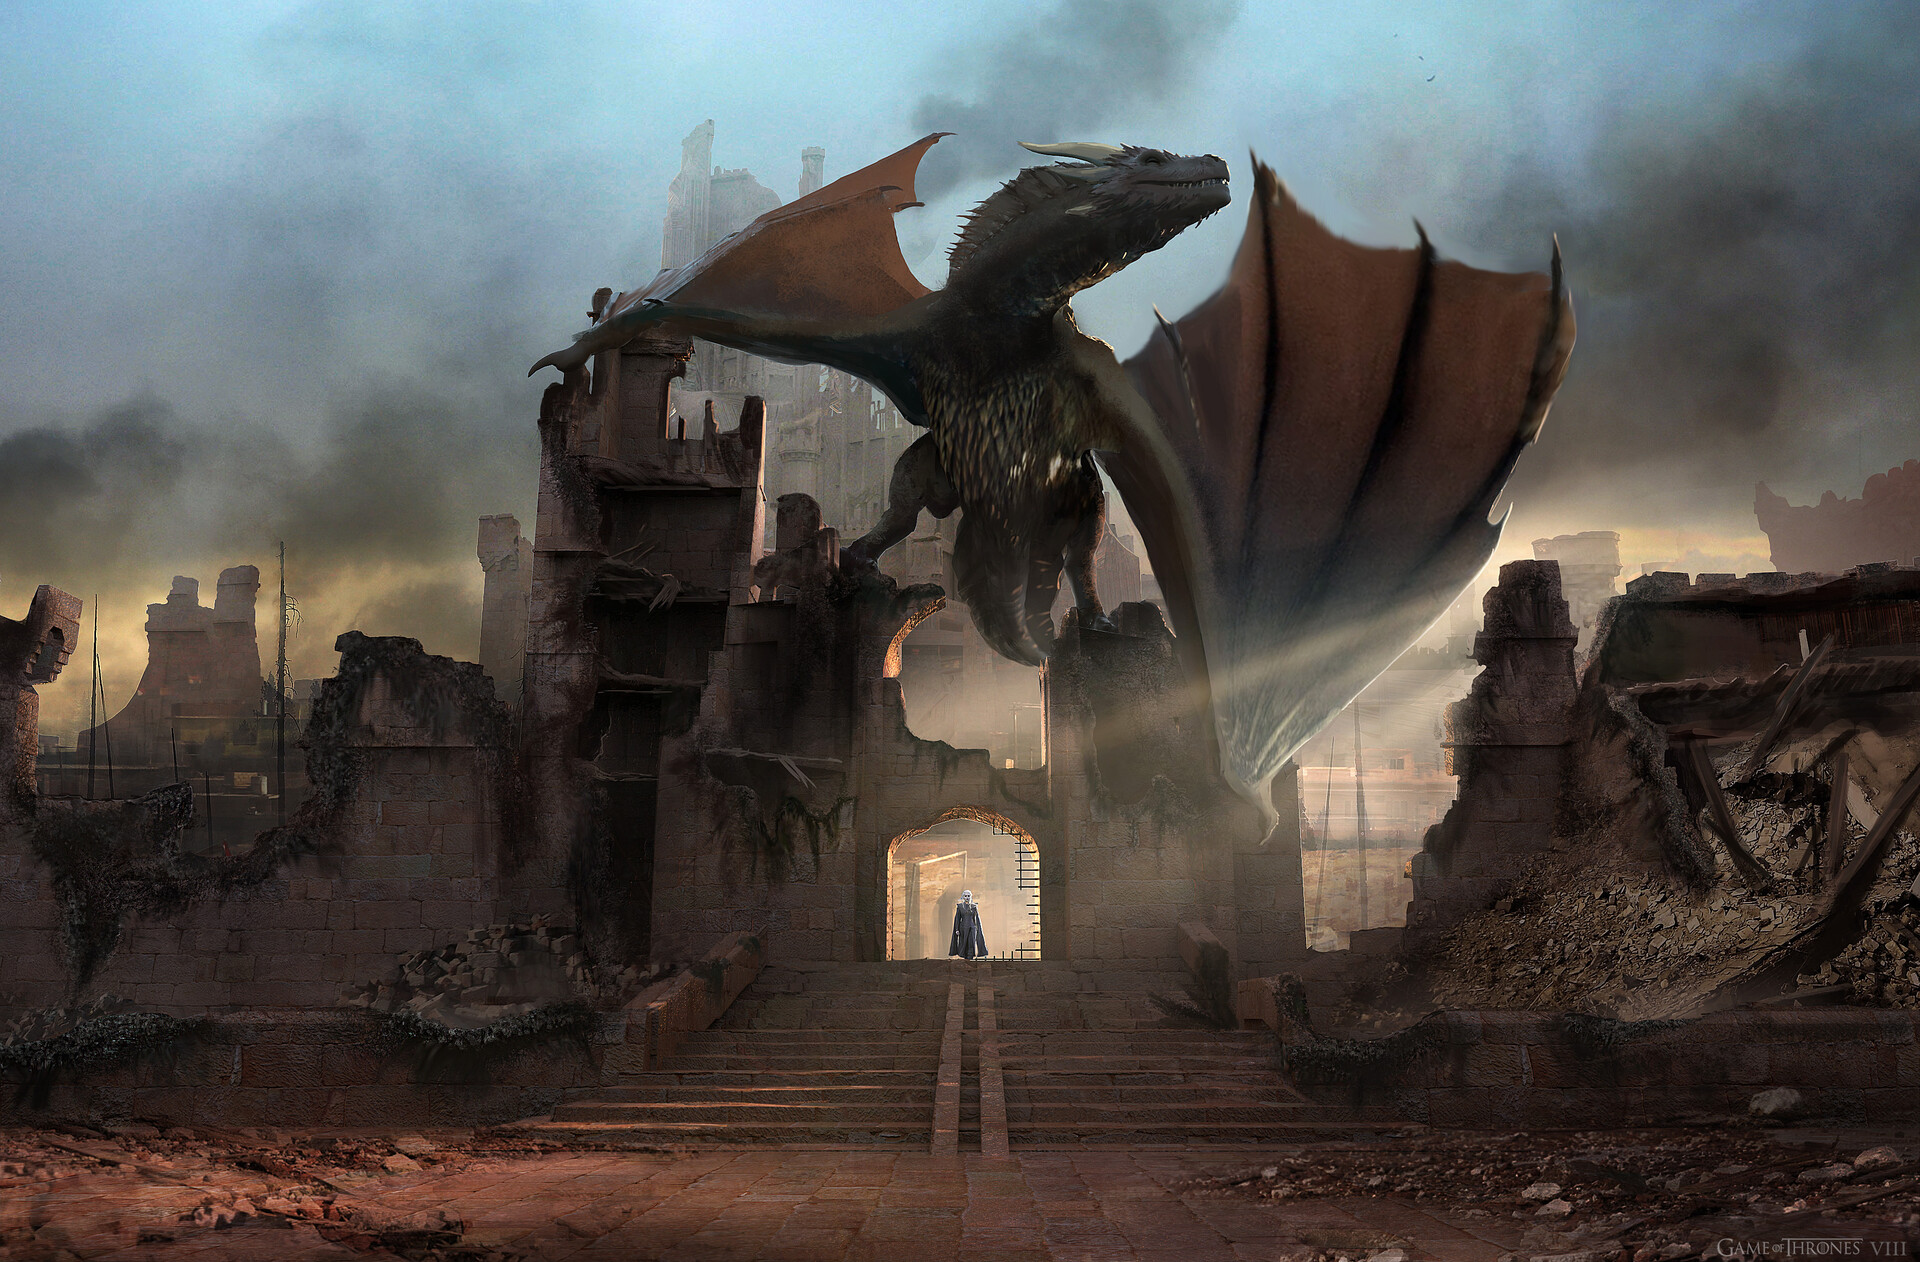 An early version with the stairs at 10ft high, Deb the production designer and PRoducers loved this until Miguel pointed out Dany looked a bit precarious standing underneath Drogon! So we moved him to the tower on the right.